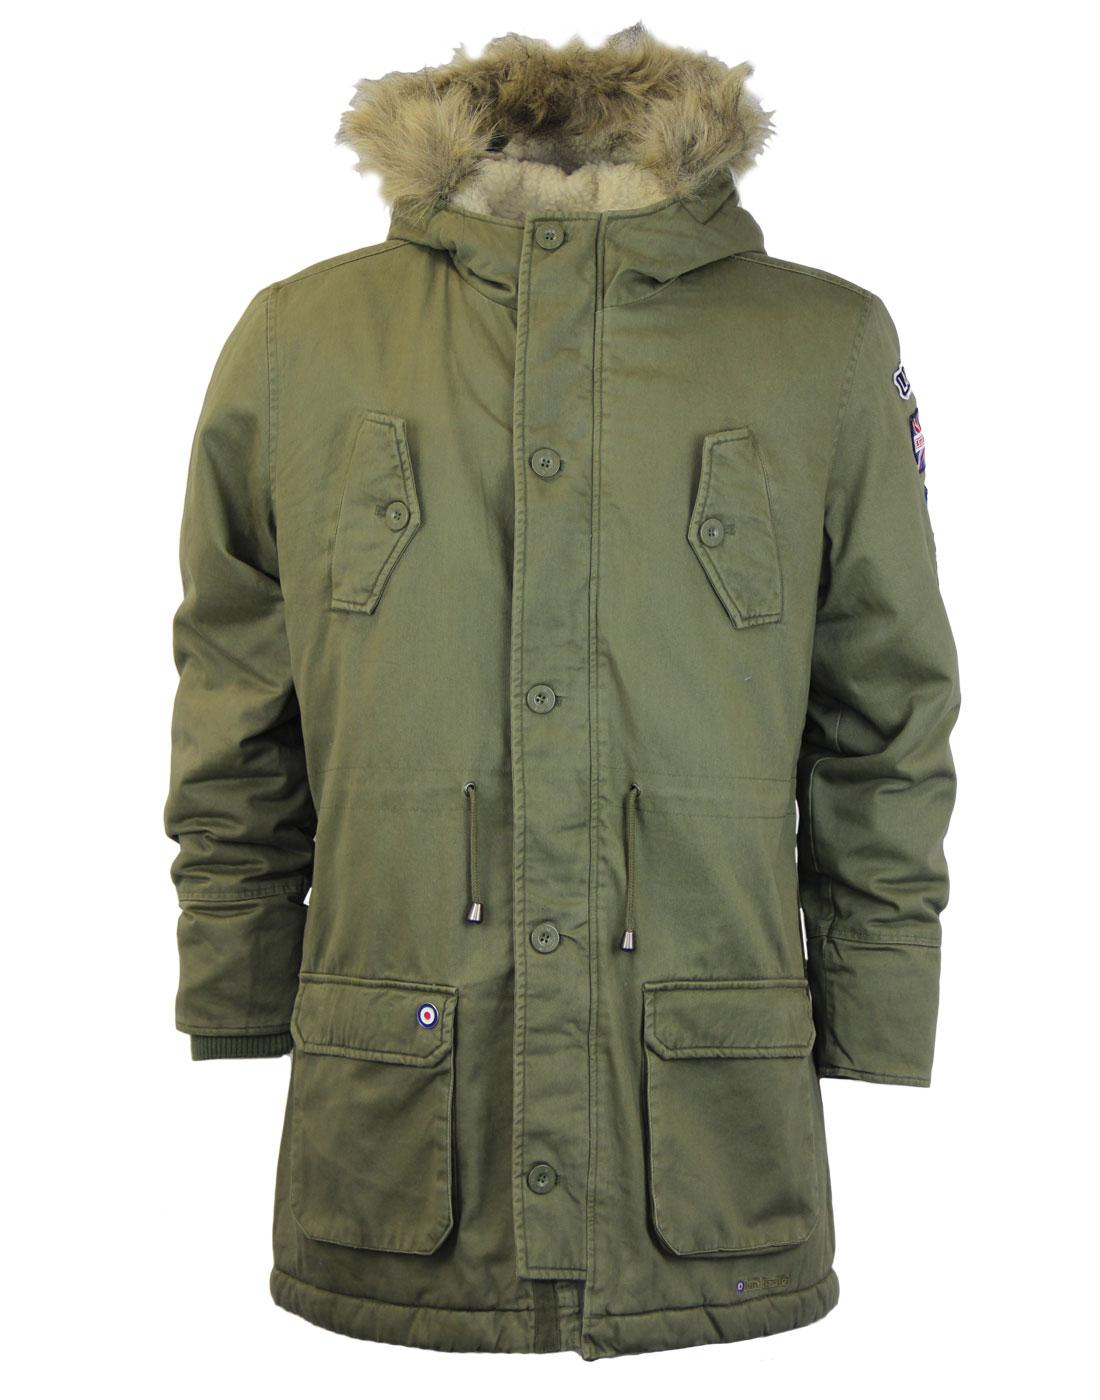 LAMBRETTA Mod Fishtail Parka With Retro Badges In Khaki